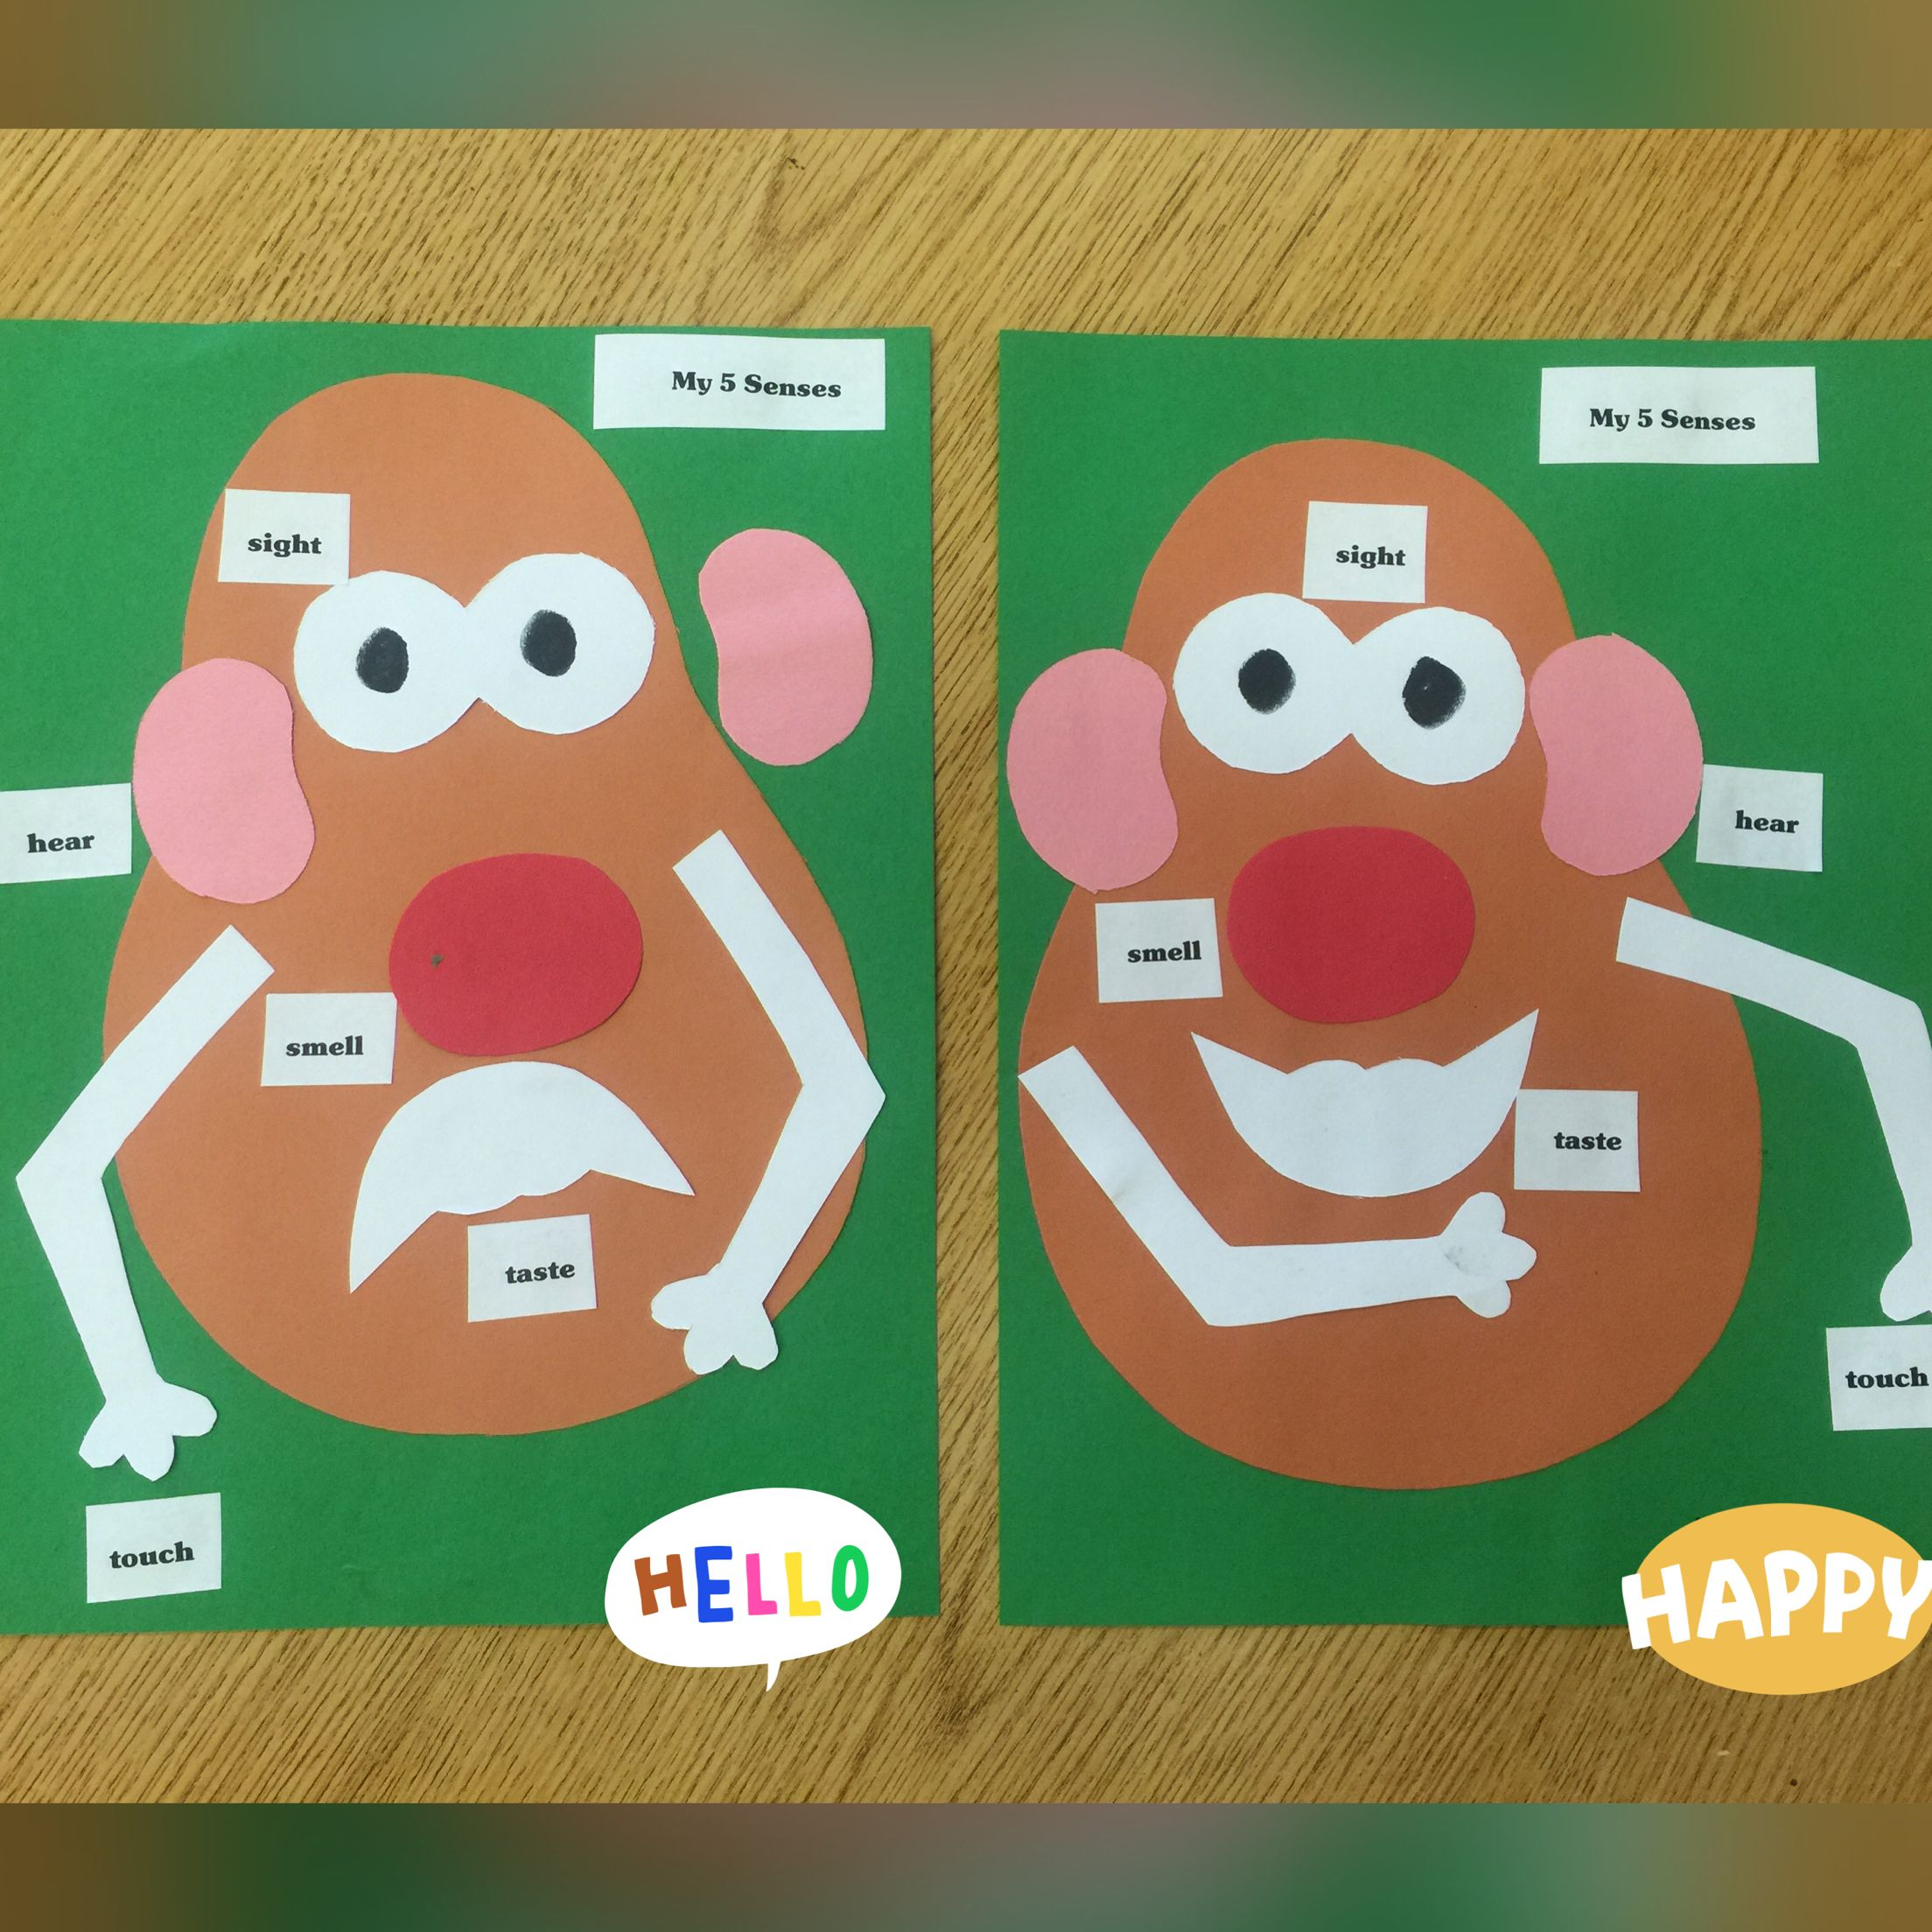 Mr Potato Head 5 Senses Activity Preschool Or